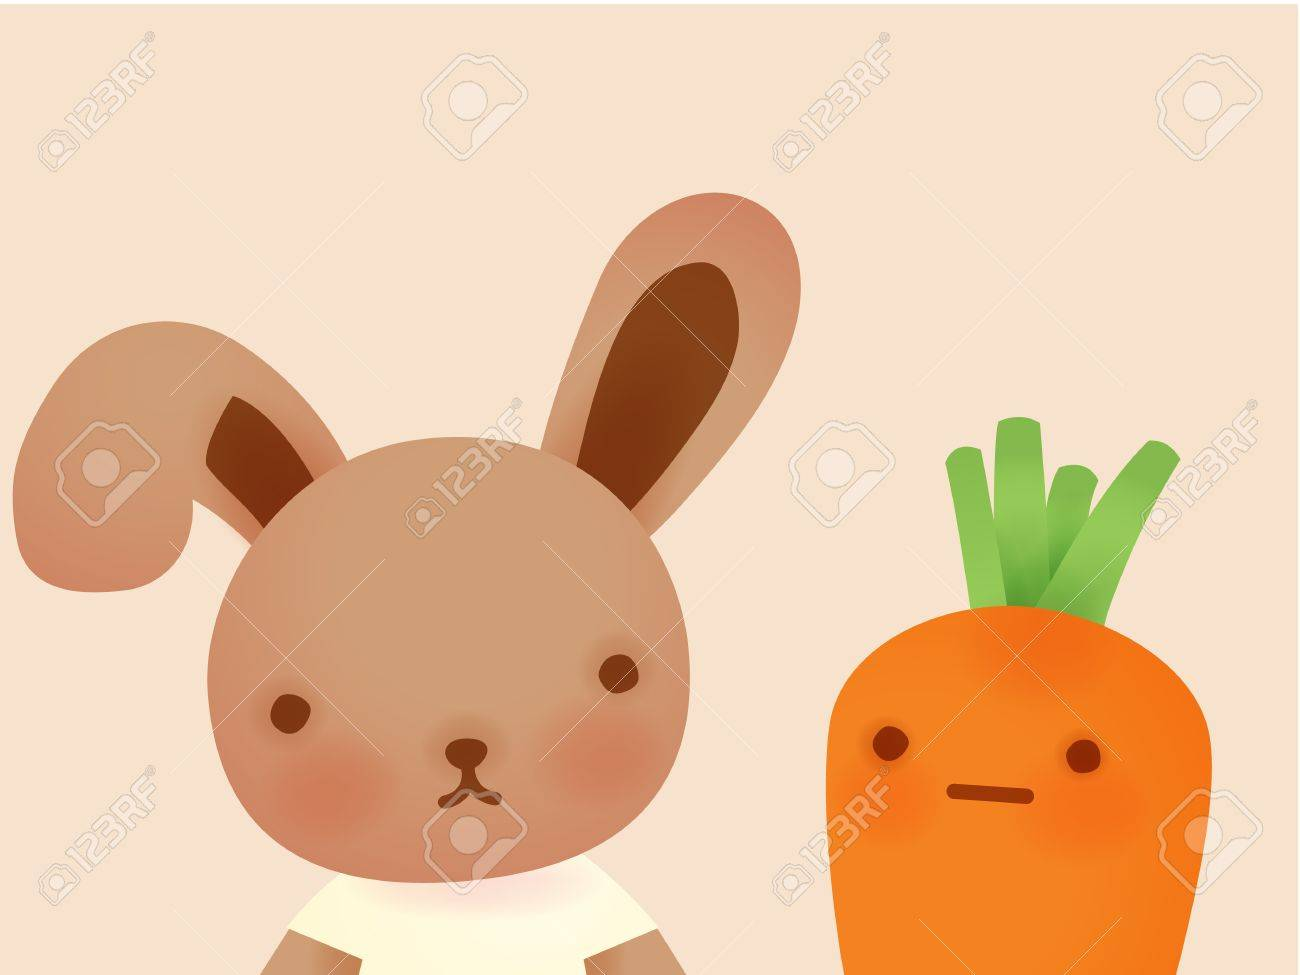 Cute Rabbit and Background Stock Vector - 19975832